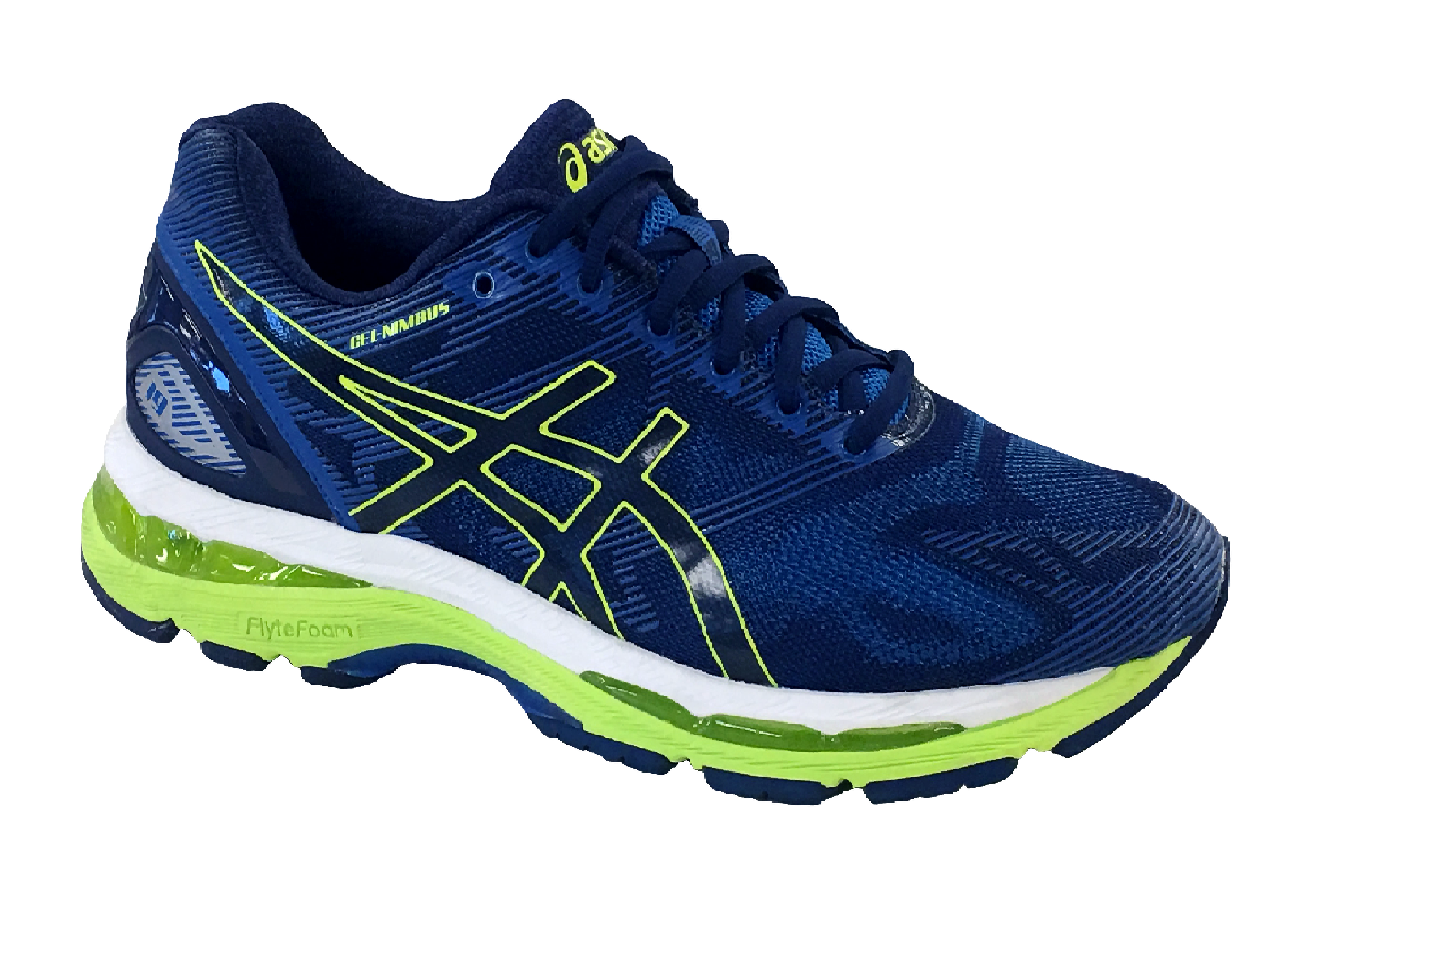 leave your own track asics gel nimbus 19. Black Bedroom Furniture Sets. Home Design Ideas